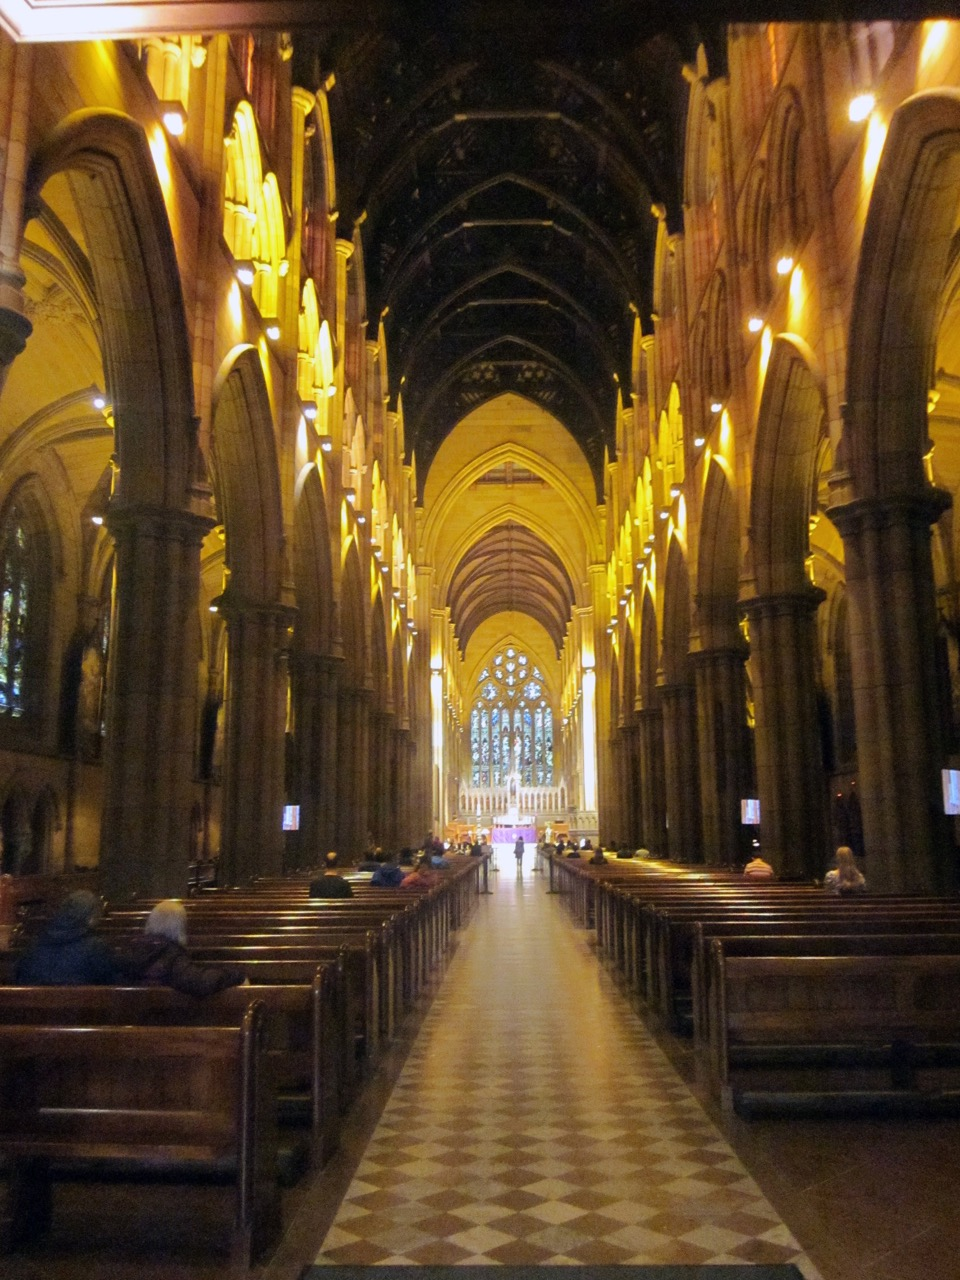 St Mary's Cathedral, interior view